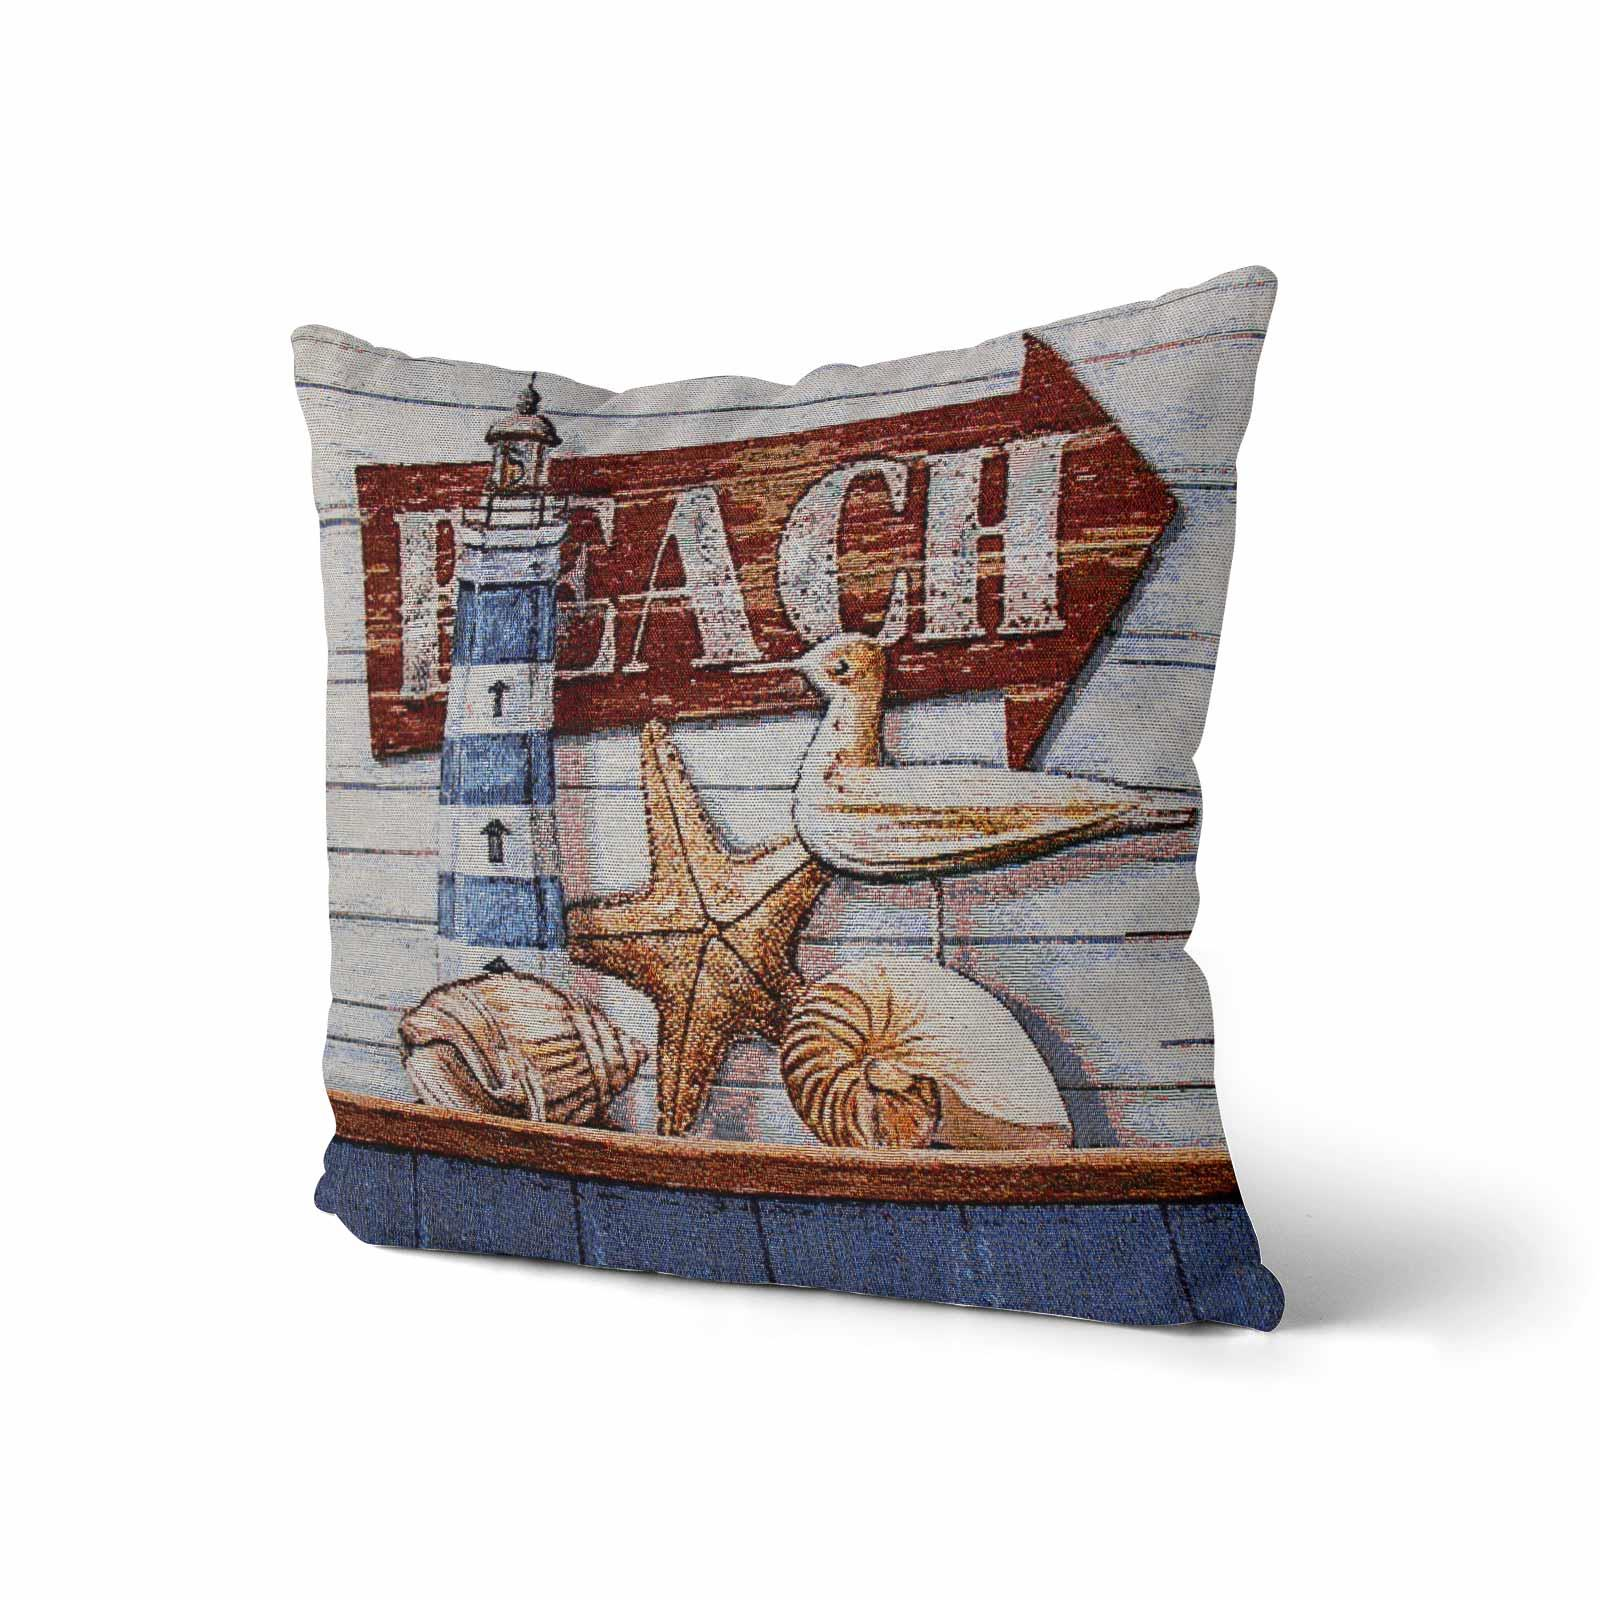 Tapestry-Cushion-Covers-Vintage-Pillow-Cover-Collection-18-034-45cm-Filled-Cushions thumbnail 9